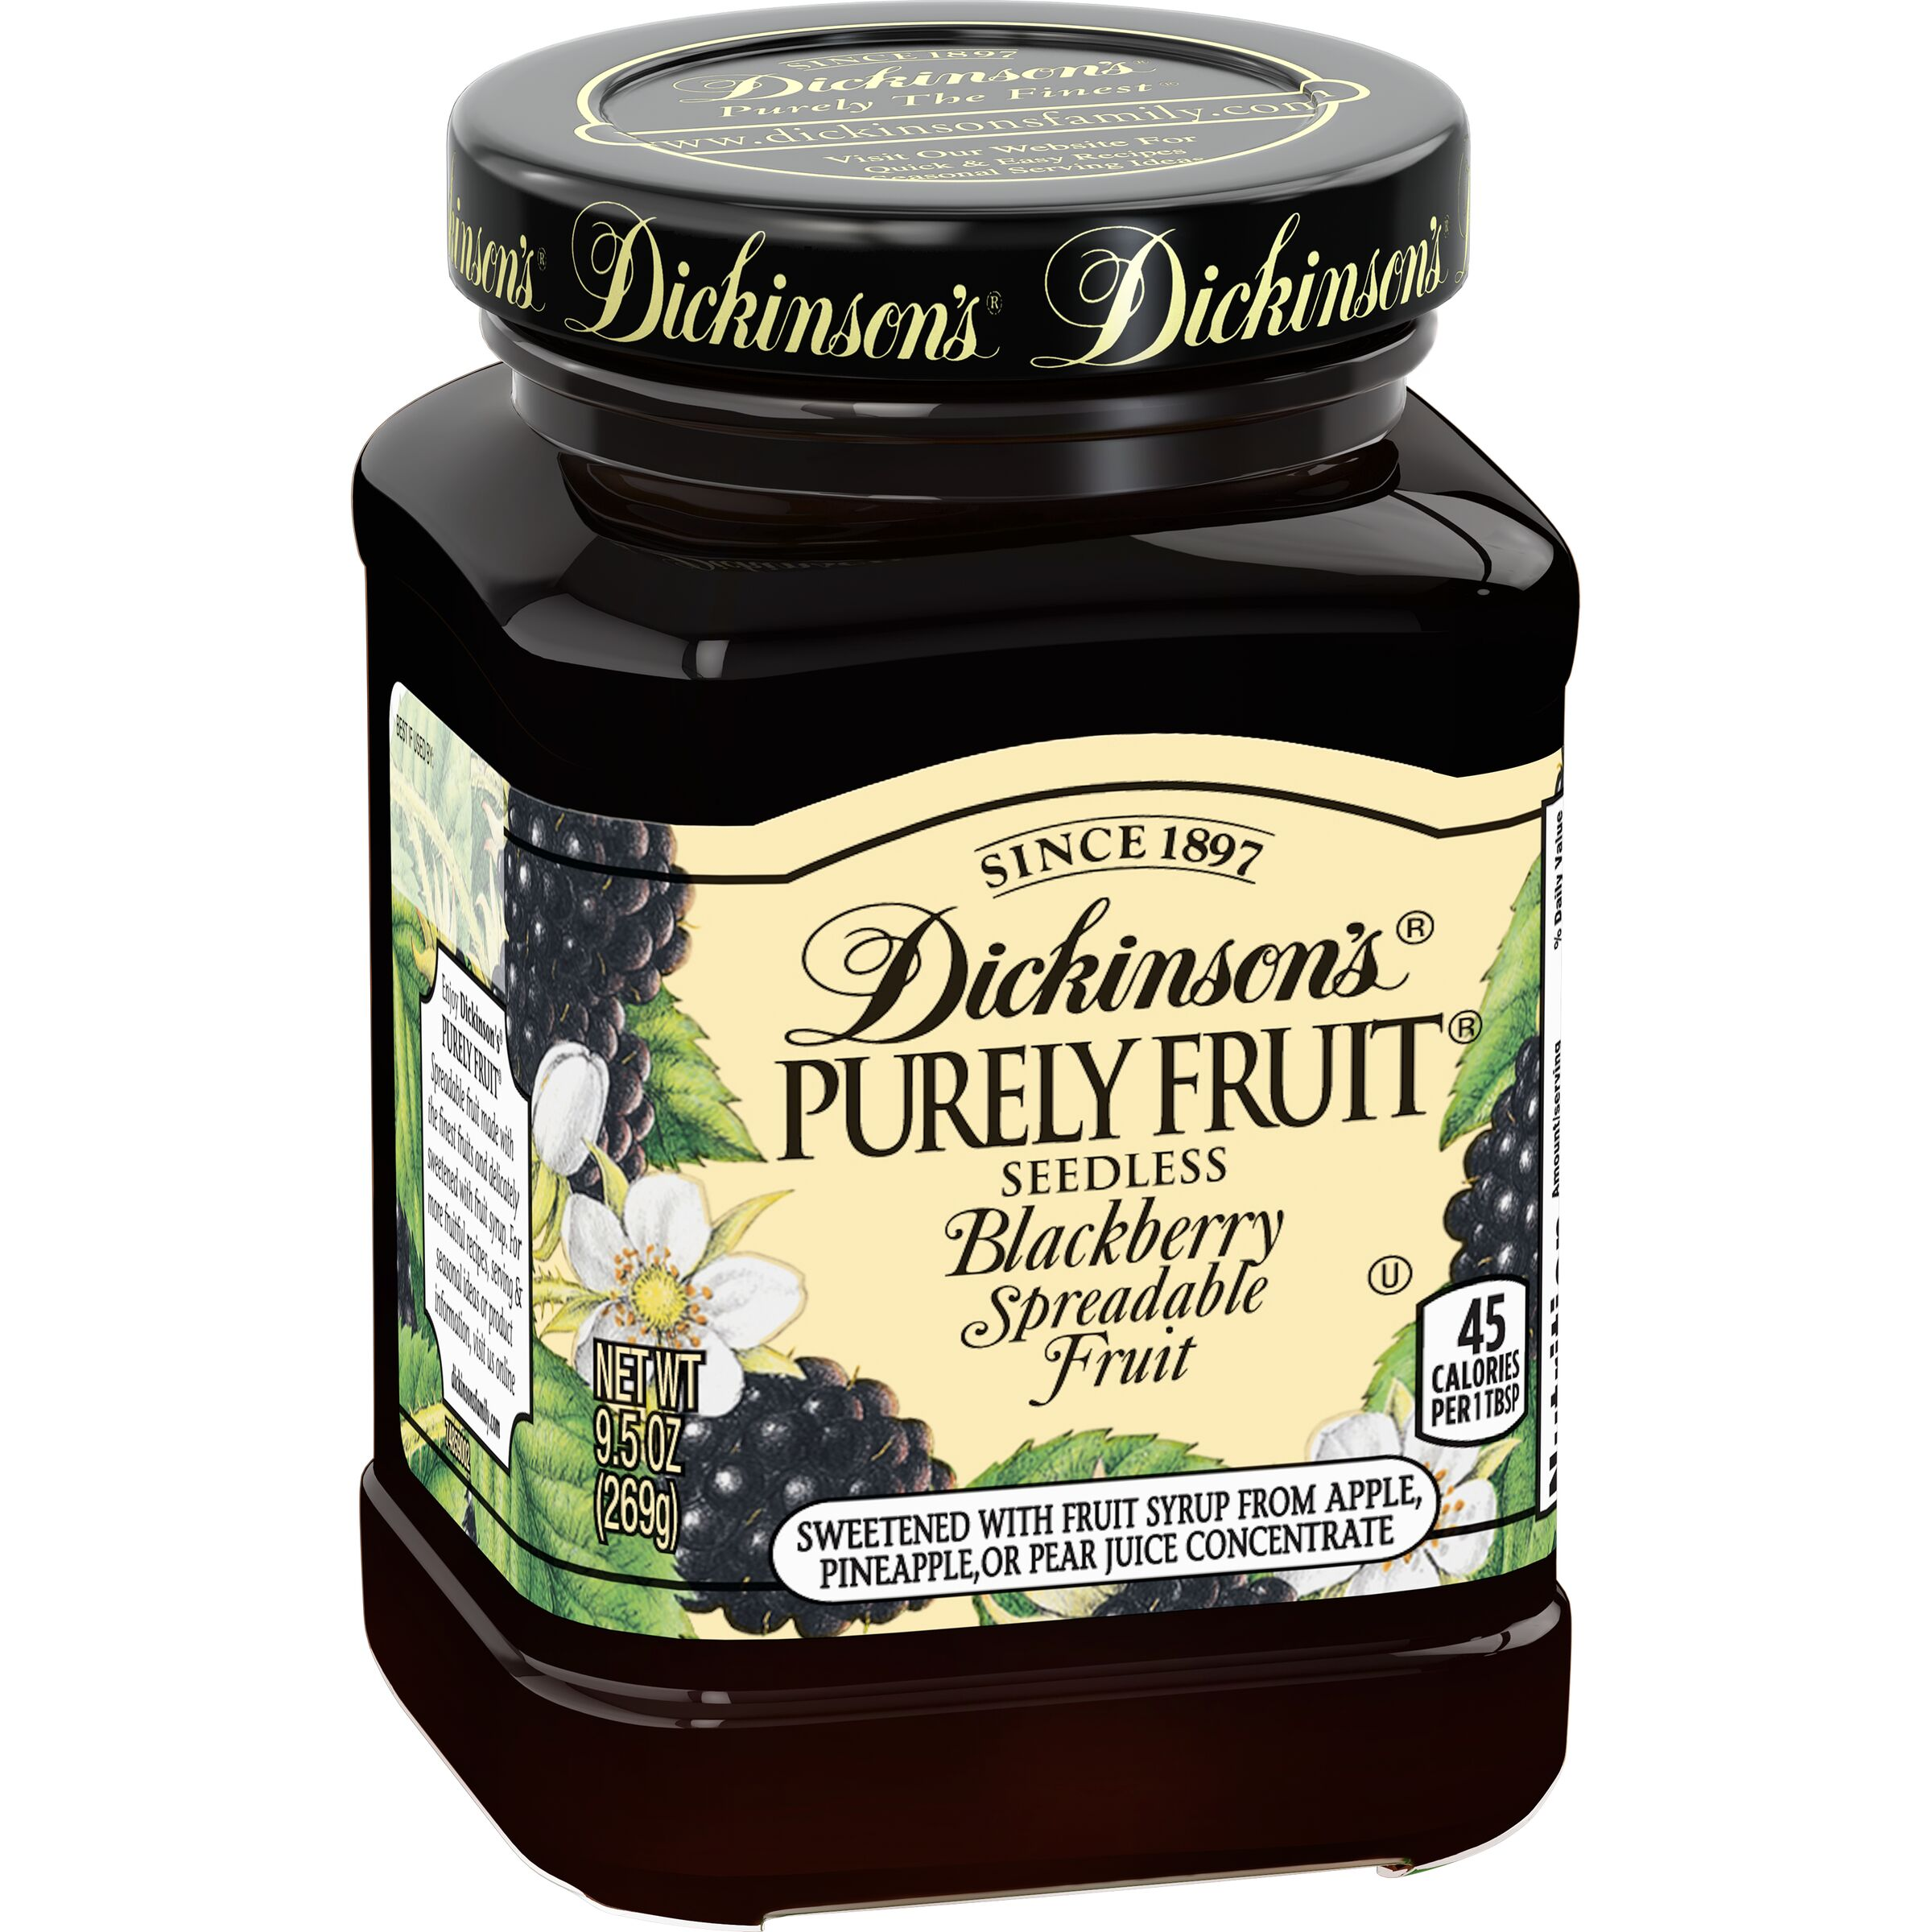 Dickinson's<sup>®</sup> Purely Fruit Seedless Blackberry Spreadable Fruit